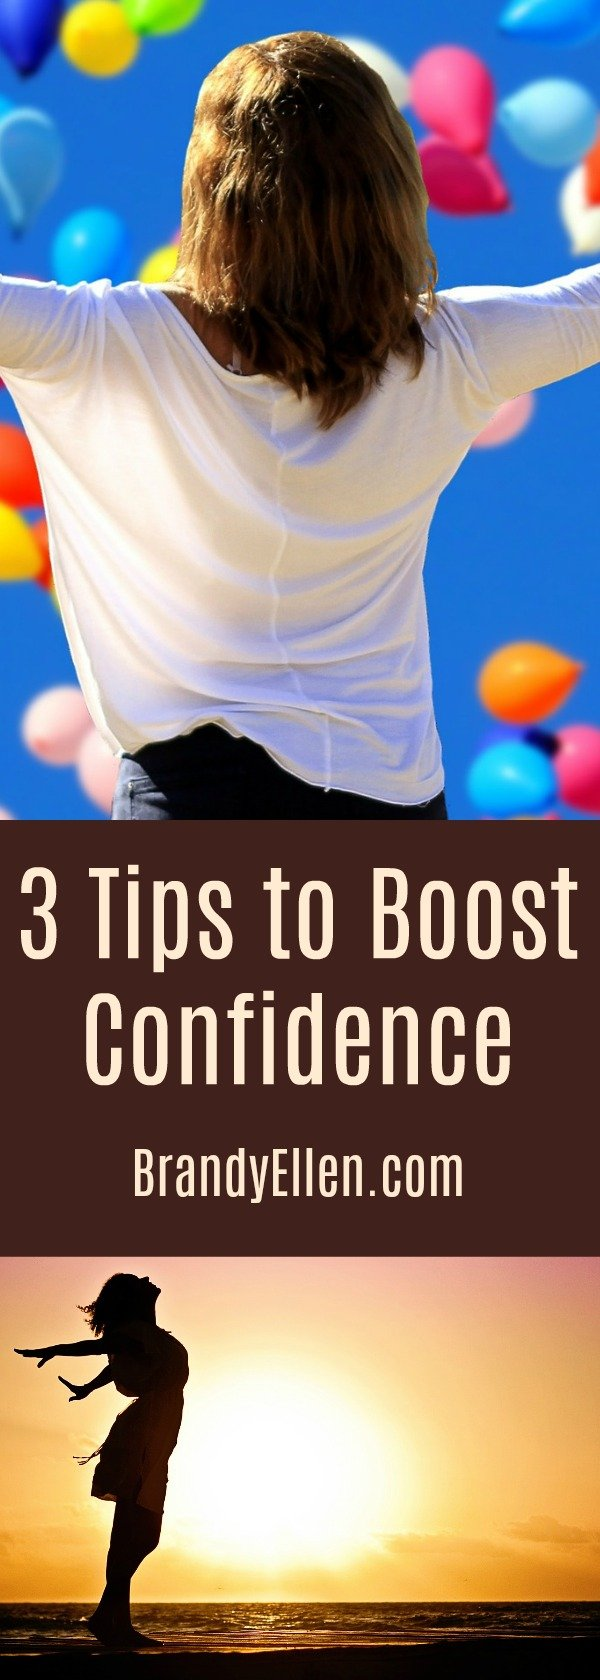 Use these tips to boost your confidence when dealing with tough times. If you are truly feeling less than worthy on a frequent basis, please reach out for professional advice from your doctor.